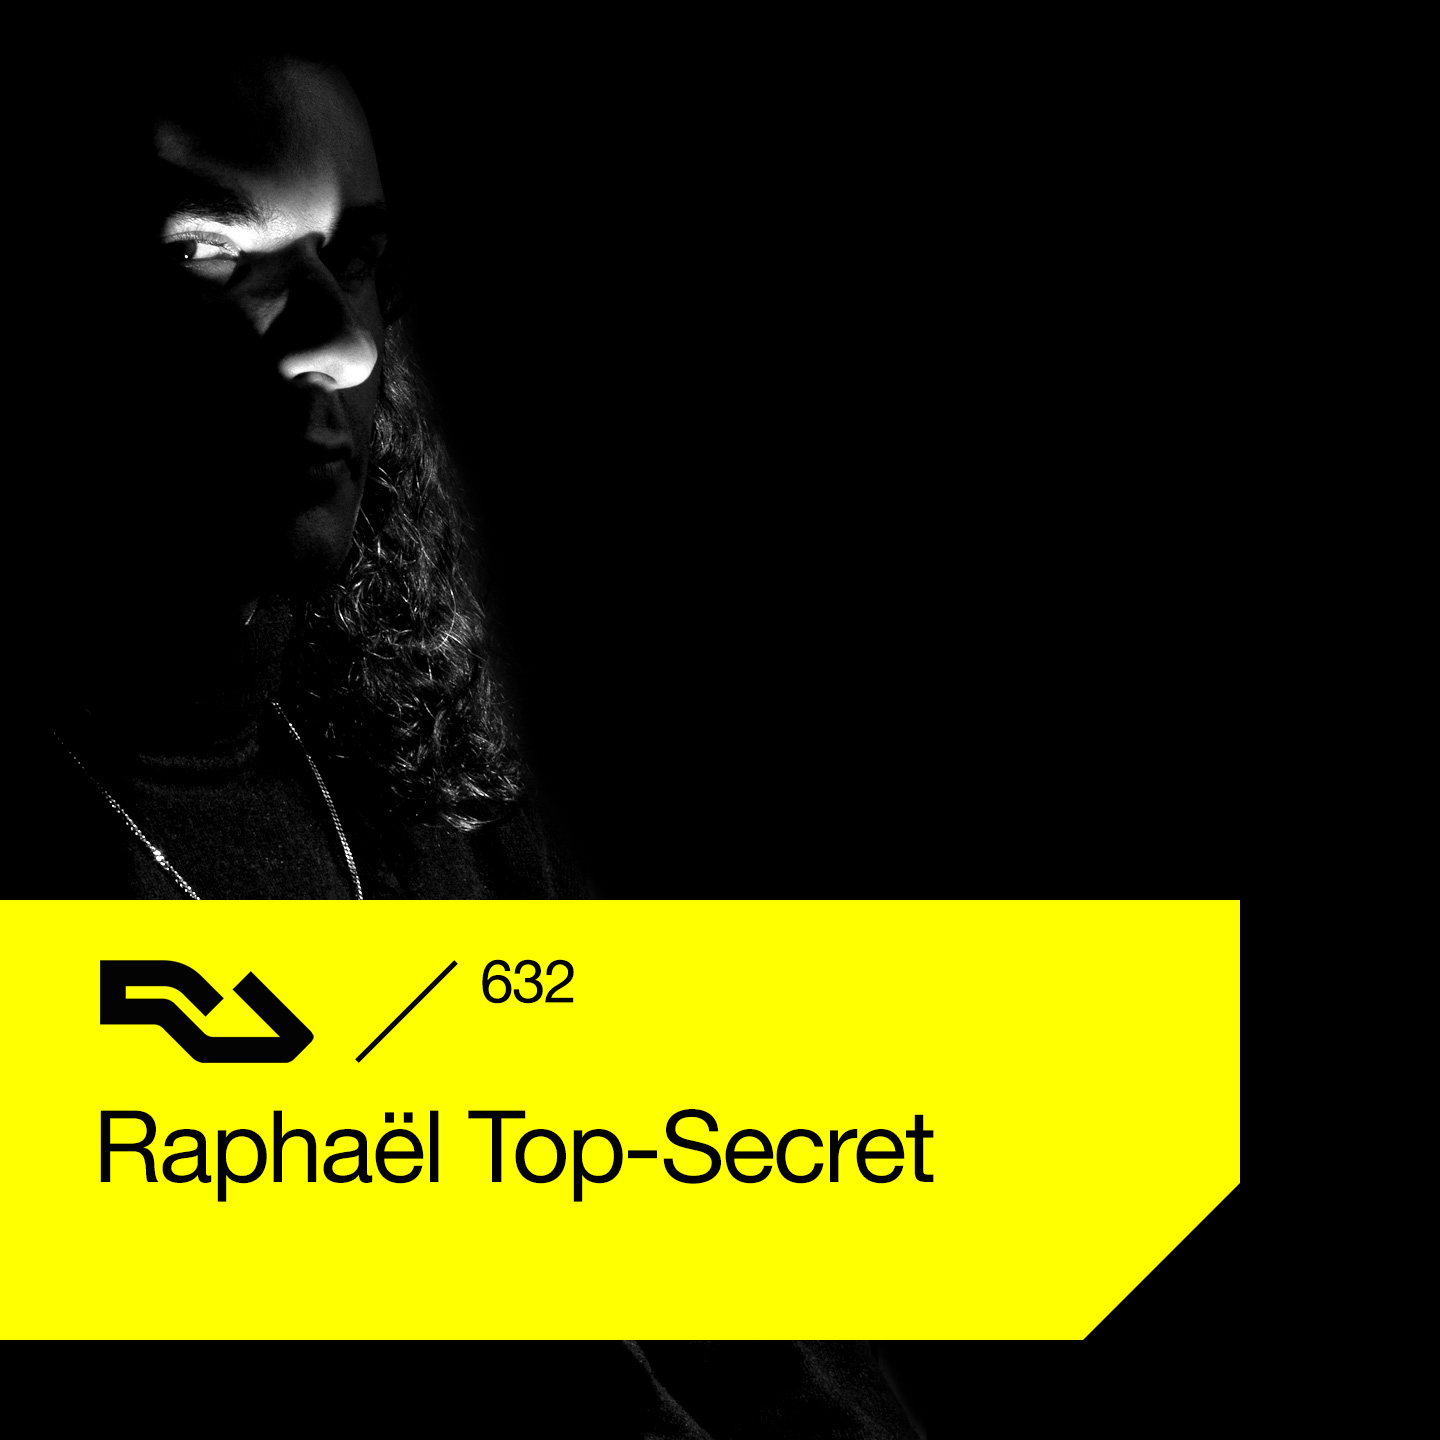 RA.632 Raphael Top-Secret